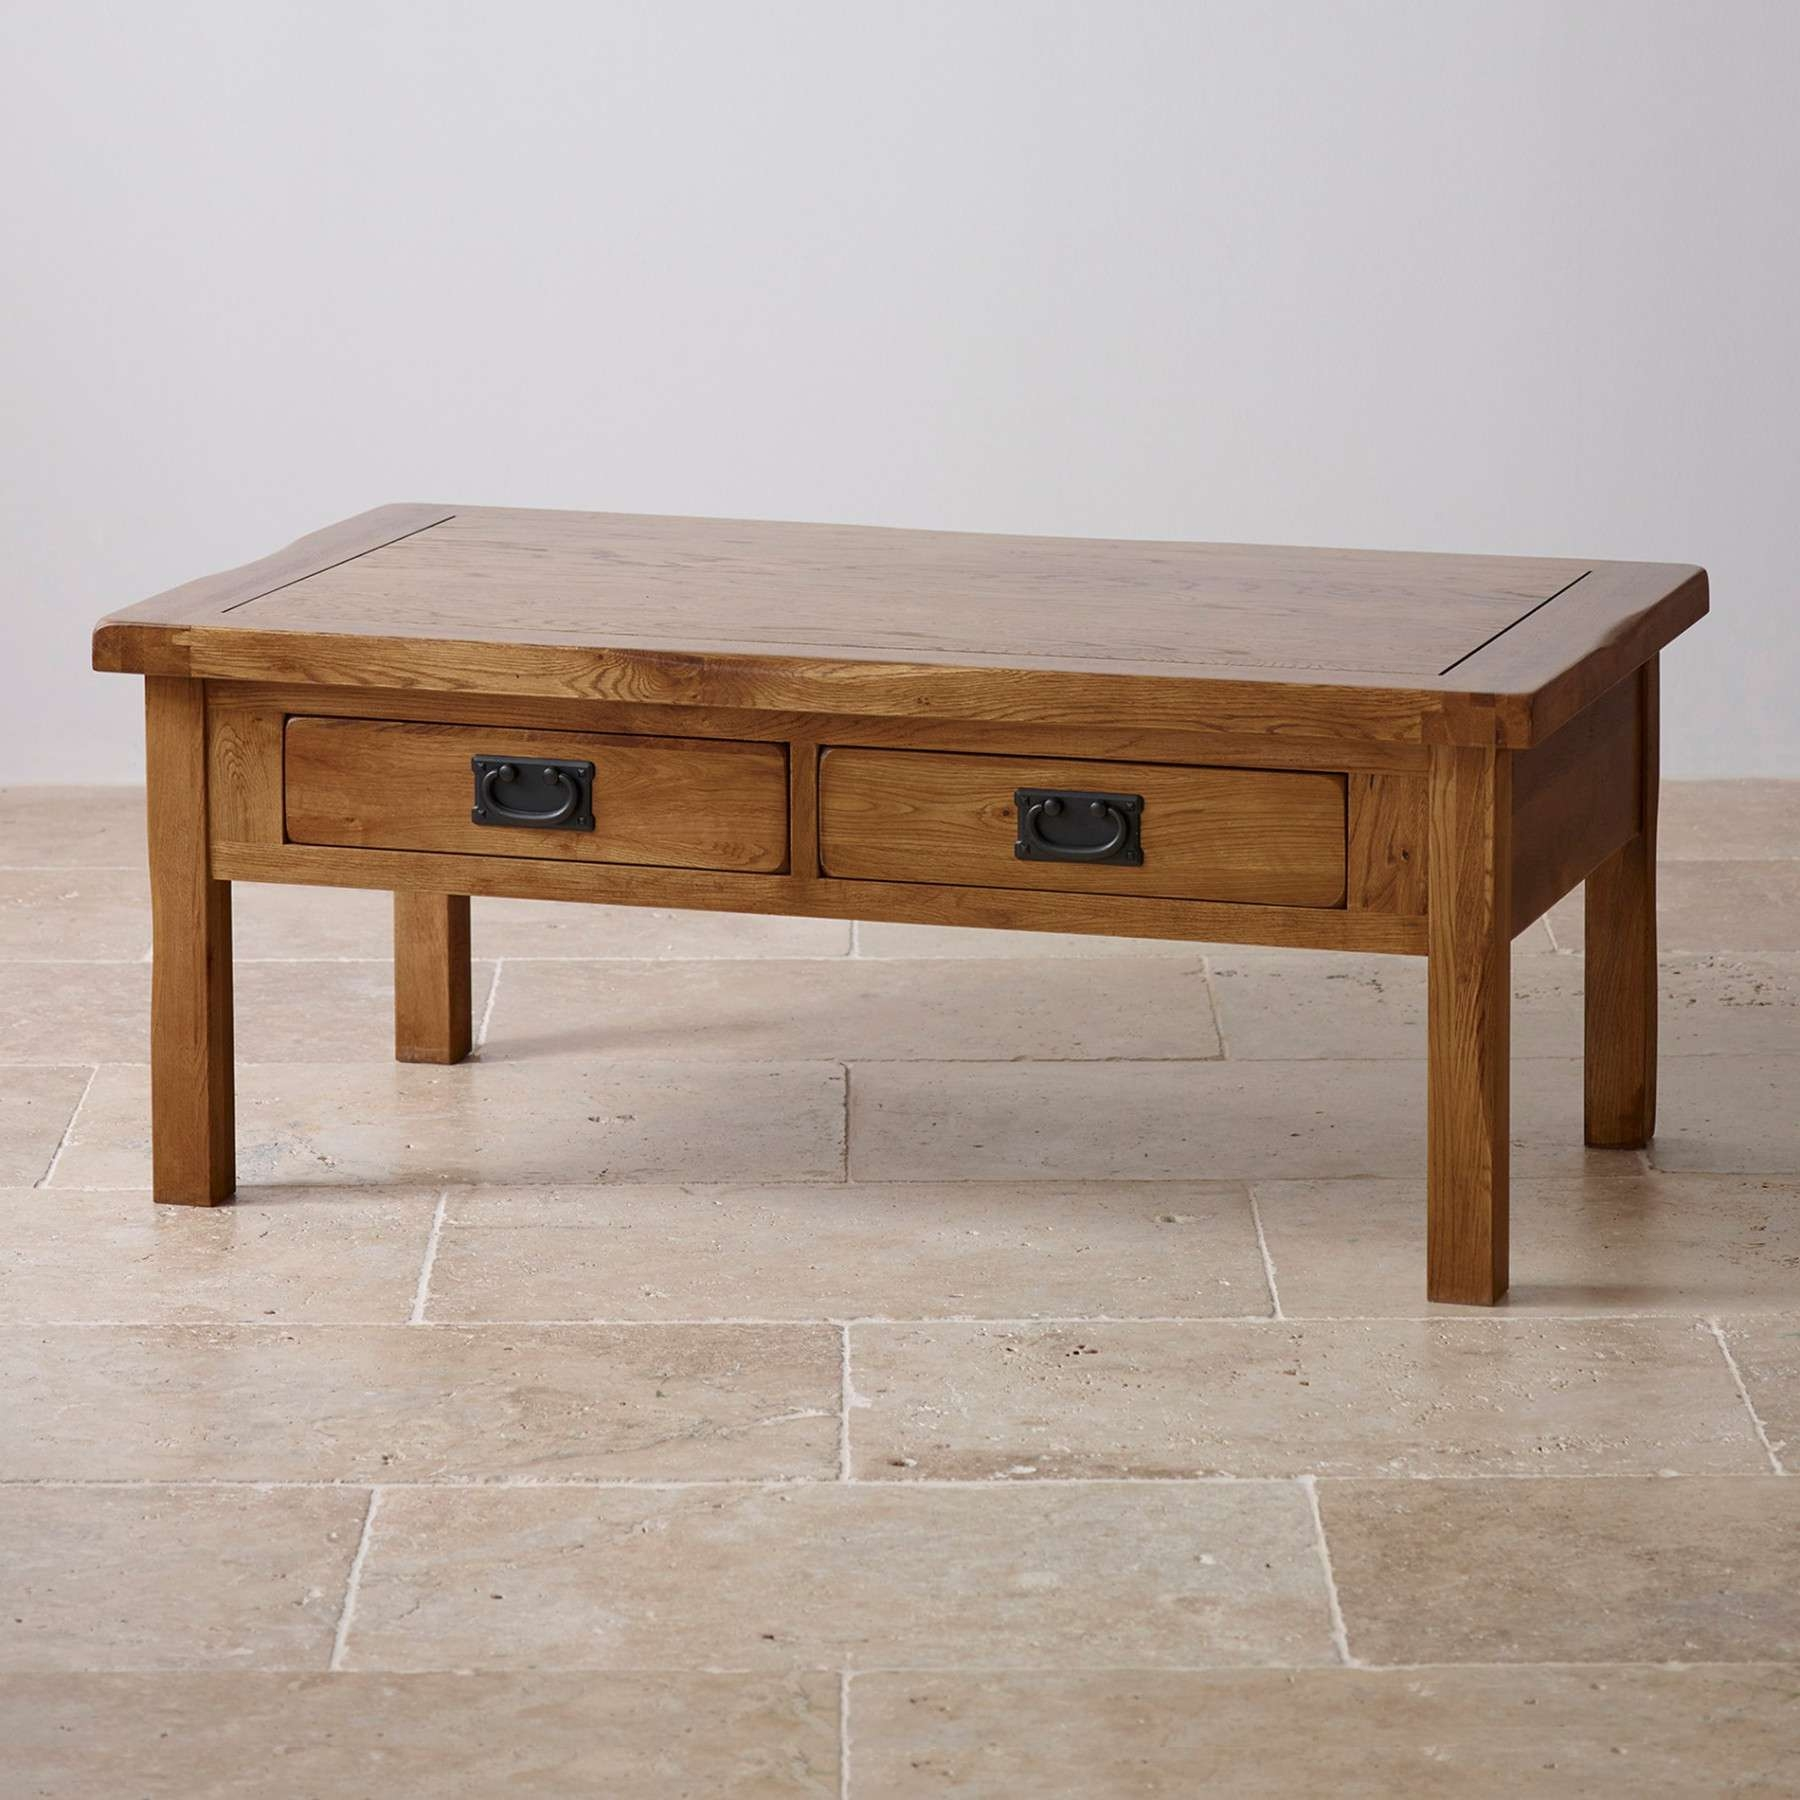 Oak Furniture Land With Most Popular Solid Oak Coffee Table With Storage (View 11 of 20)